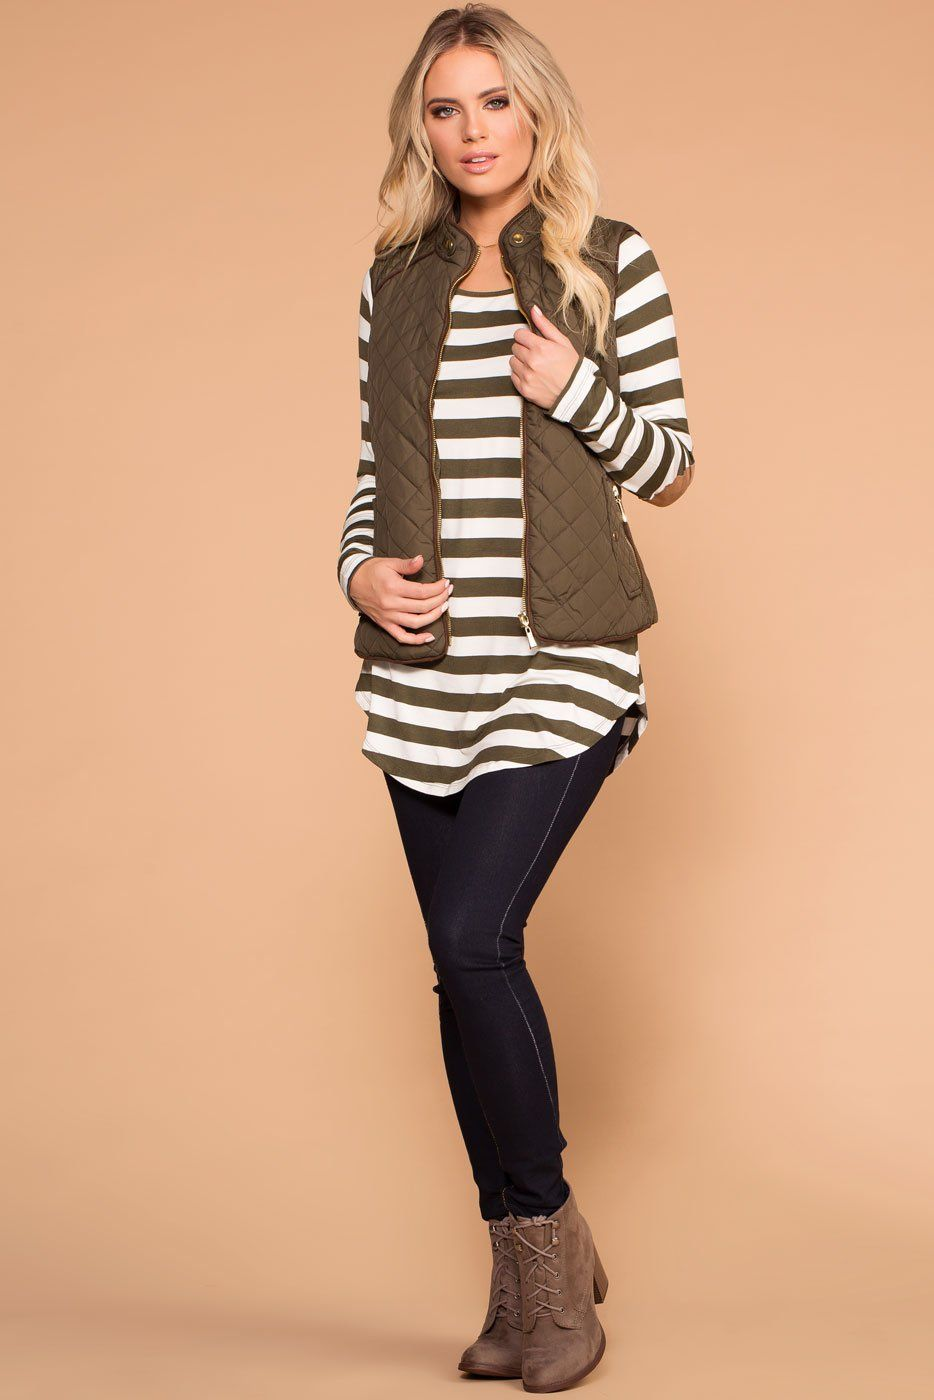 Priceless | Olive | Striped Top | Elbow Patch Top | Womens